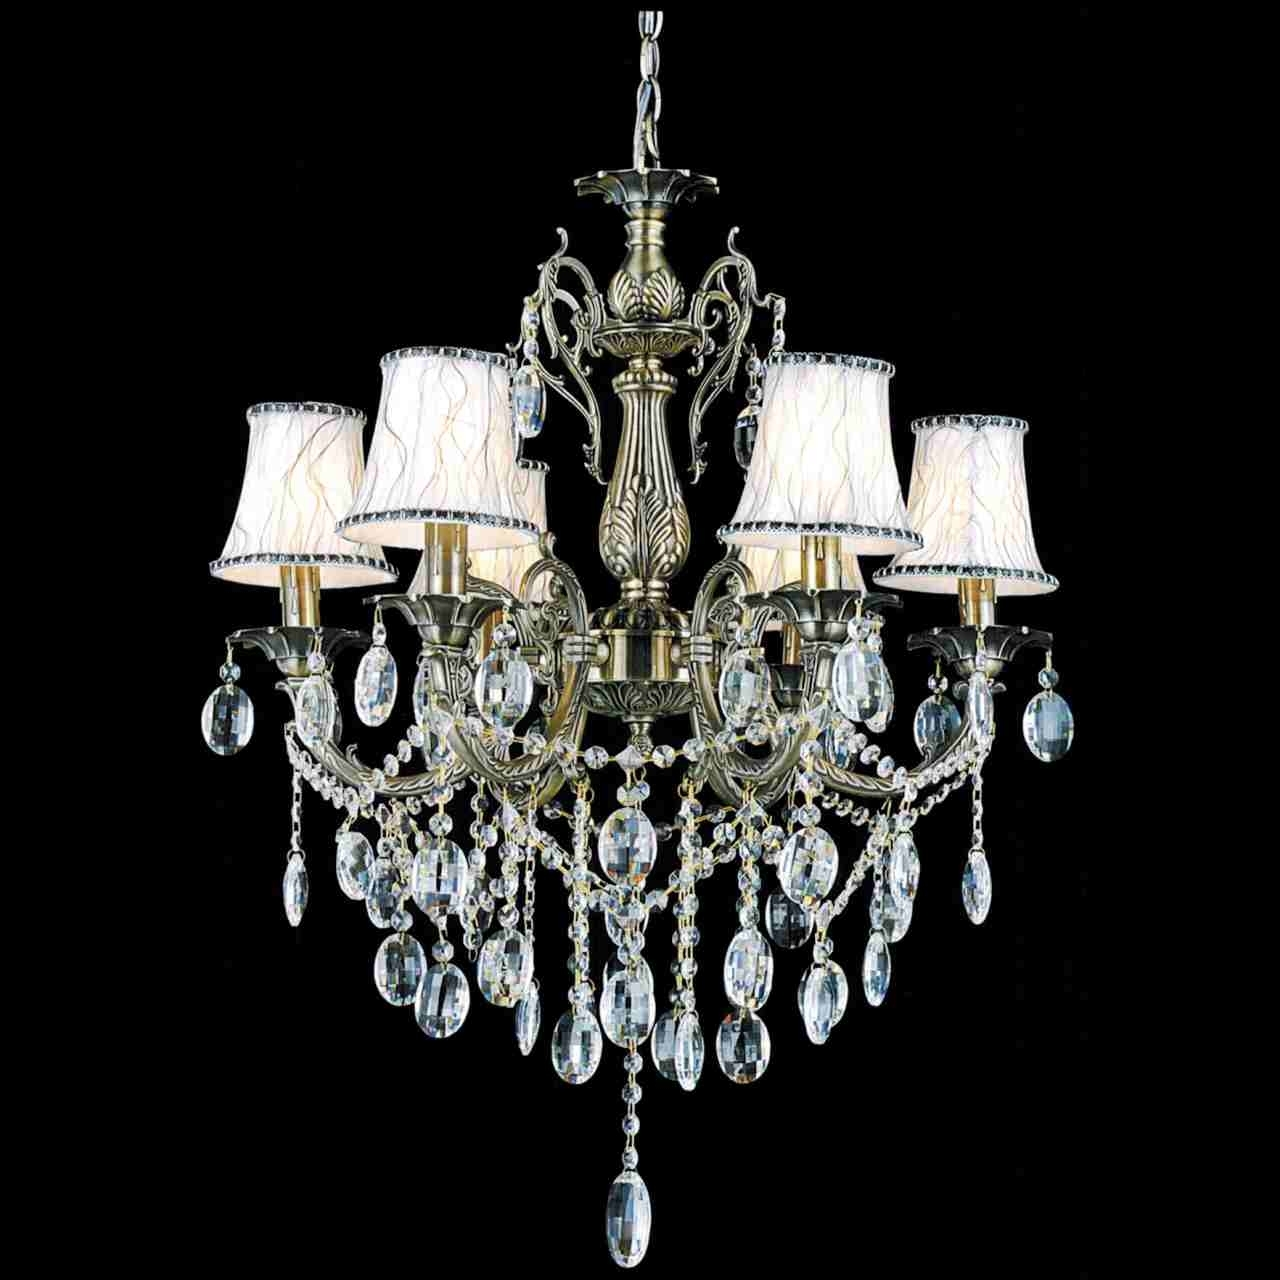 2018 Traditional Crystal Chandeliers Intended For Brizzo Lighting Stores (View 7 of 15)